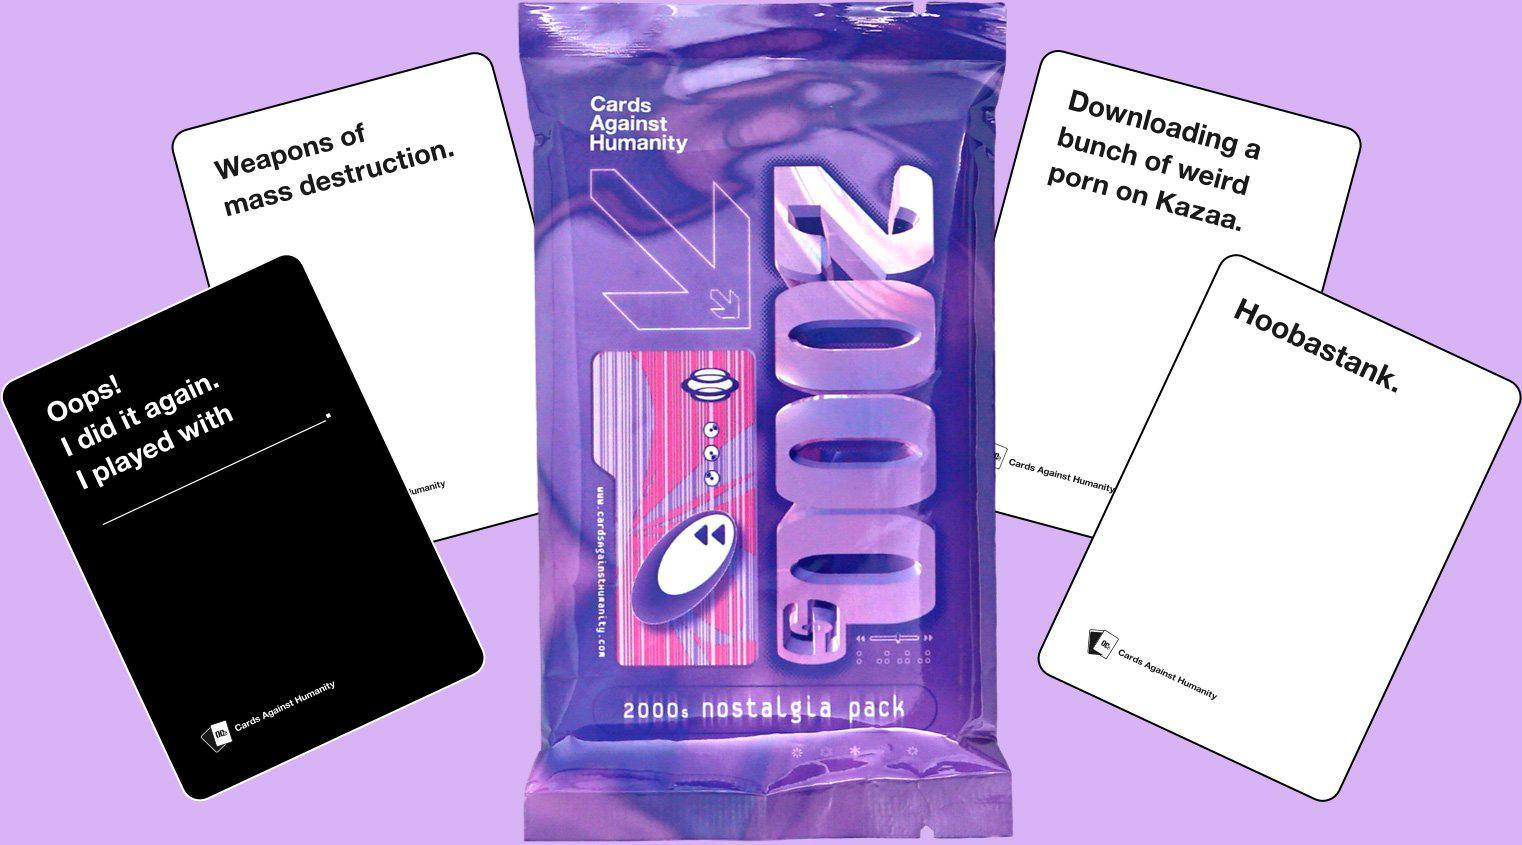 Cards Against Humanity - 2000s Nostalgia Pack-Cards Against Humanity-Game Kings